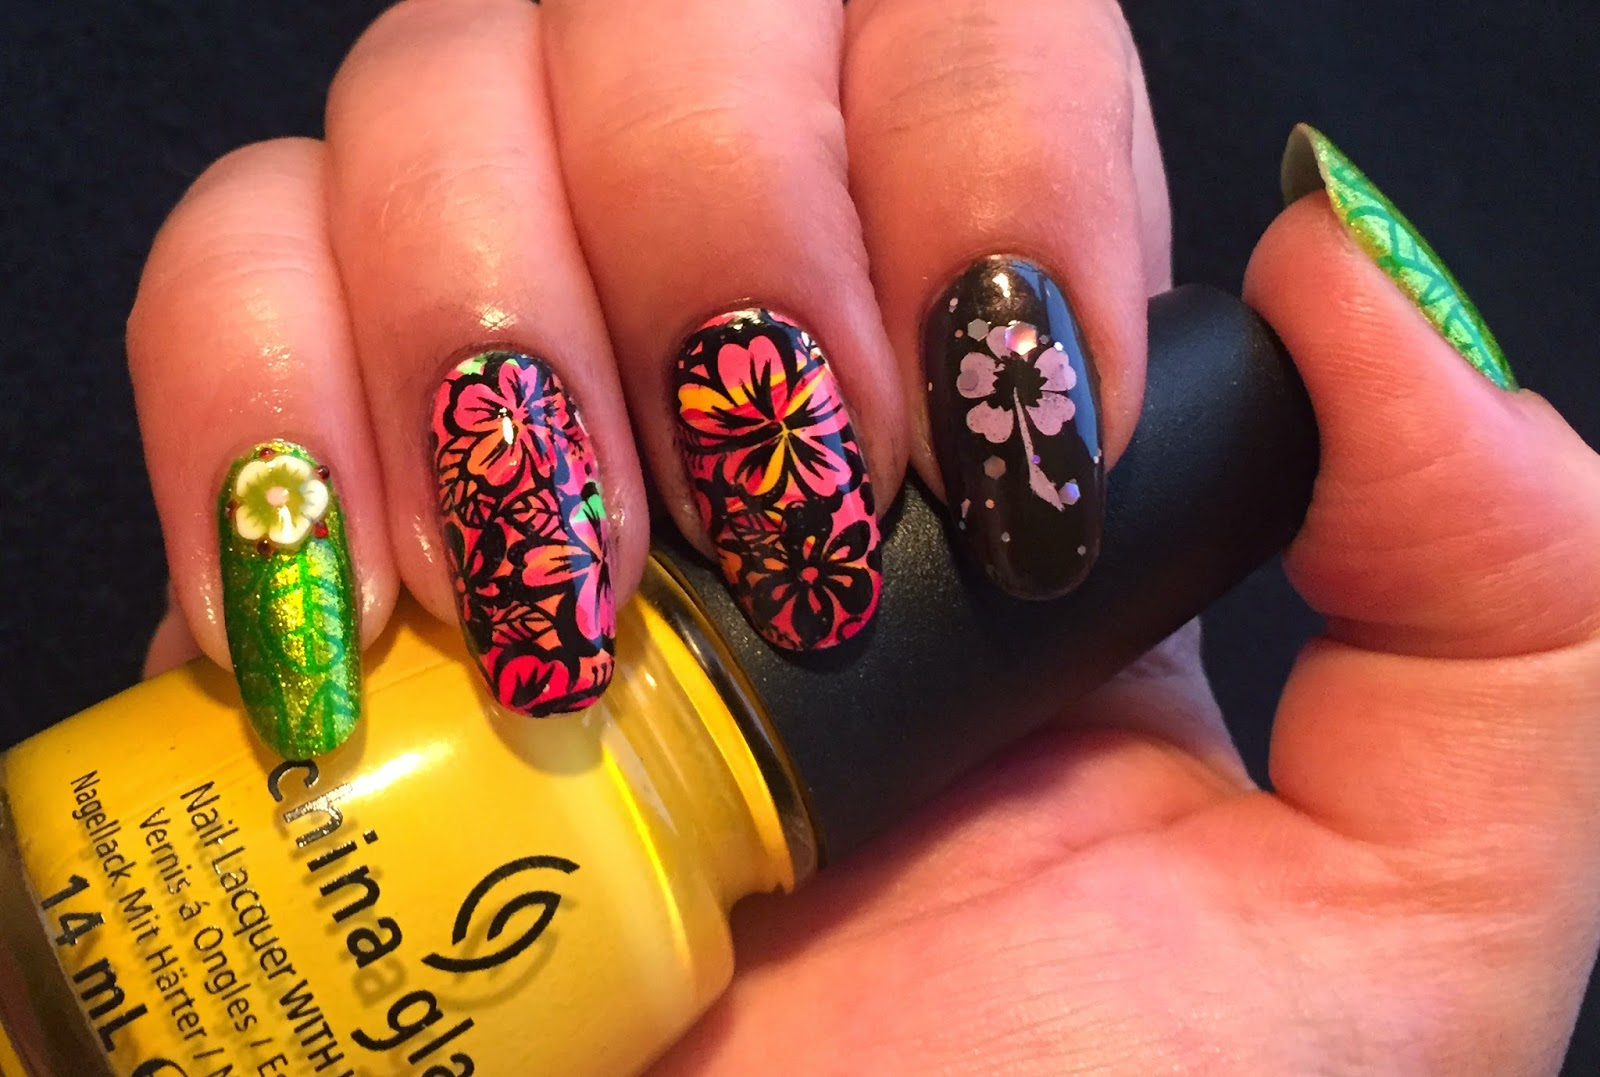 Squarebulb nail designs hpb presents may hibiscus flowers sugar high and heli yum nine ultra pro lime light kleancolor fuschia glitter and metallic green designs stamped with konad special polish izmirmasajfo